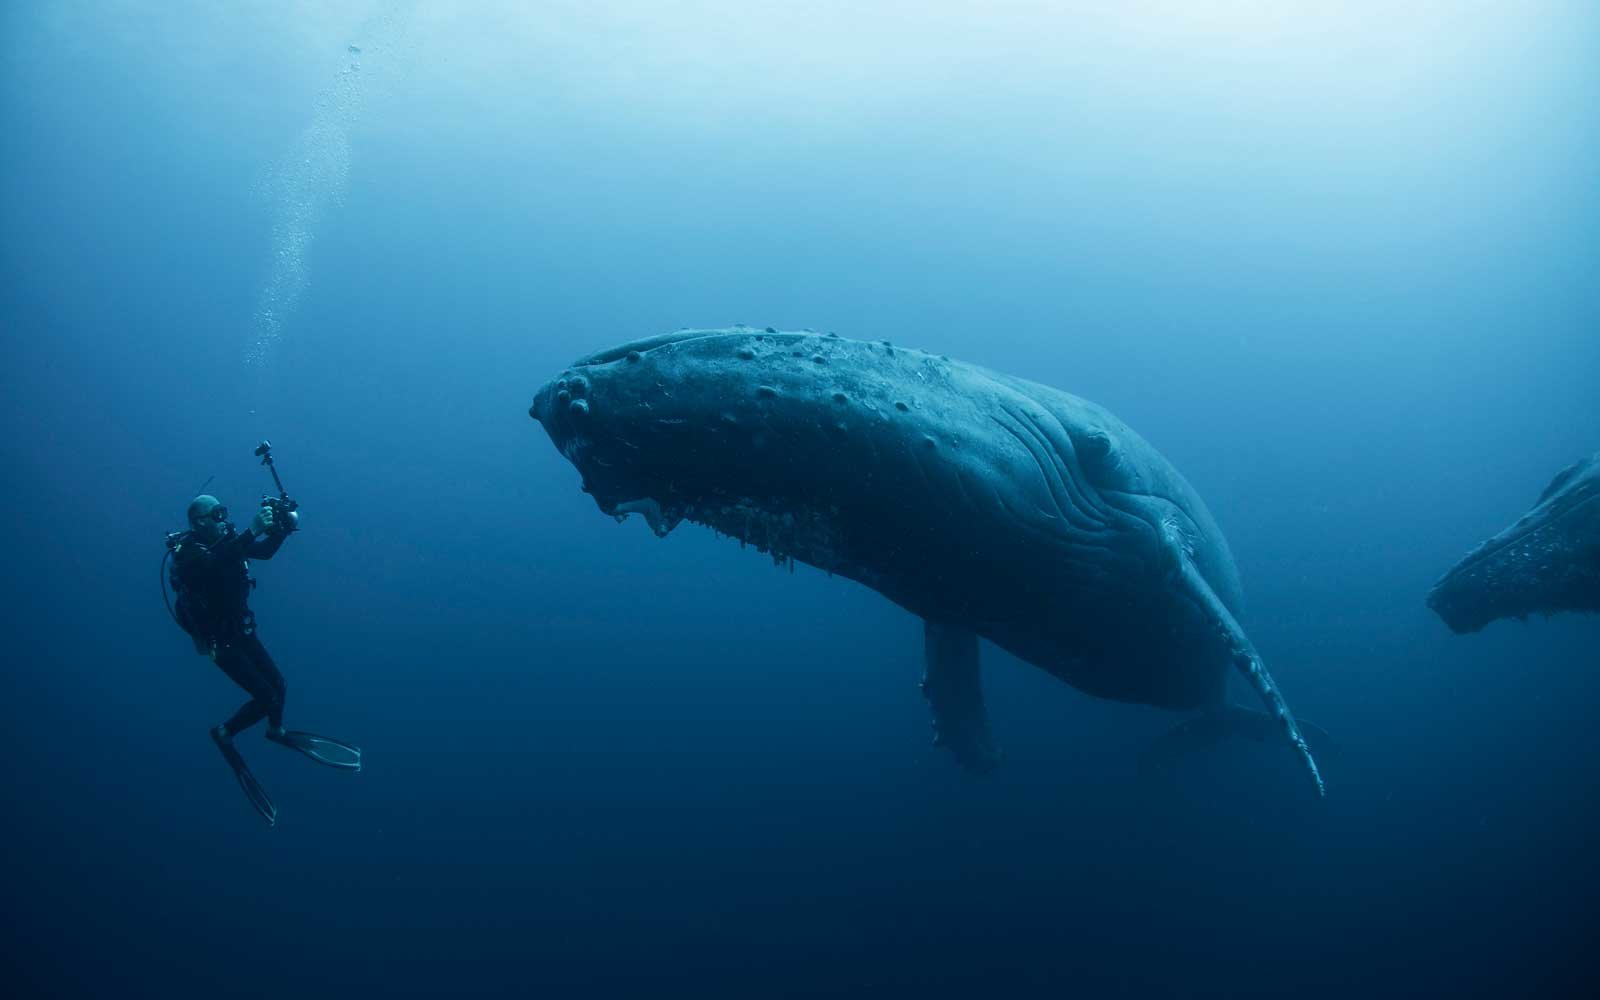 This Diver Got An Epic Selfie With An Enormous Humpback